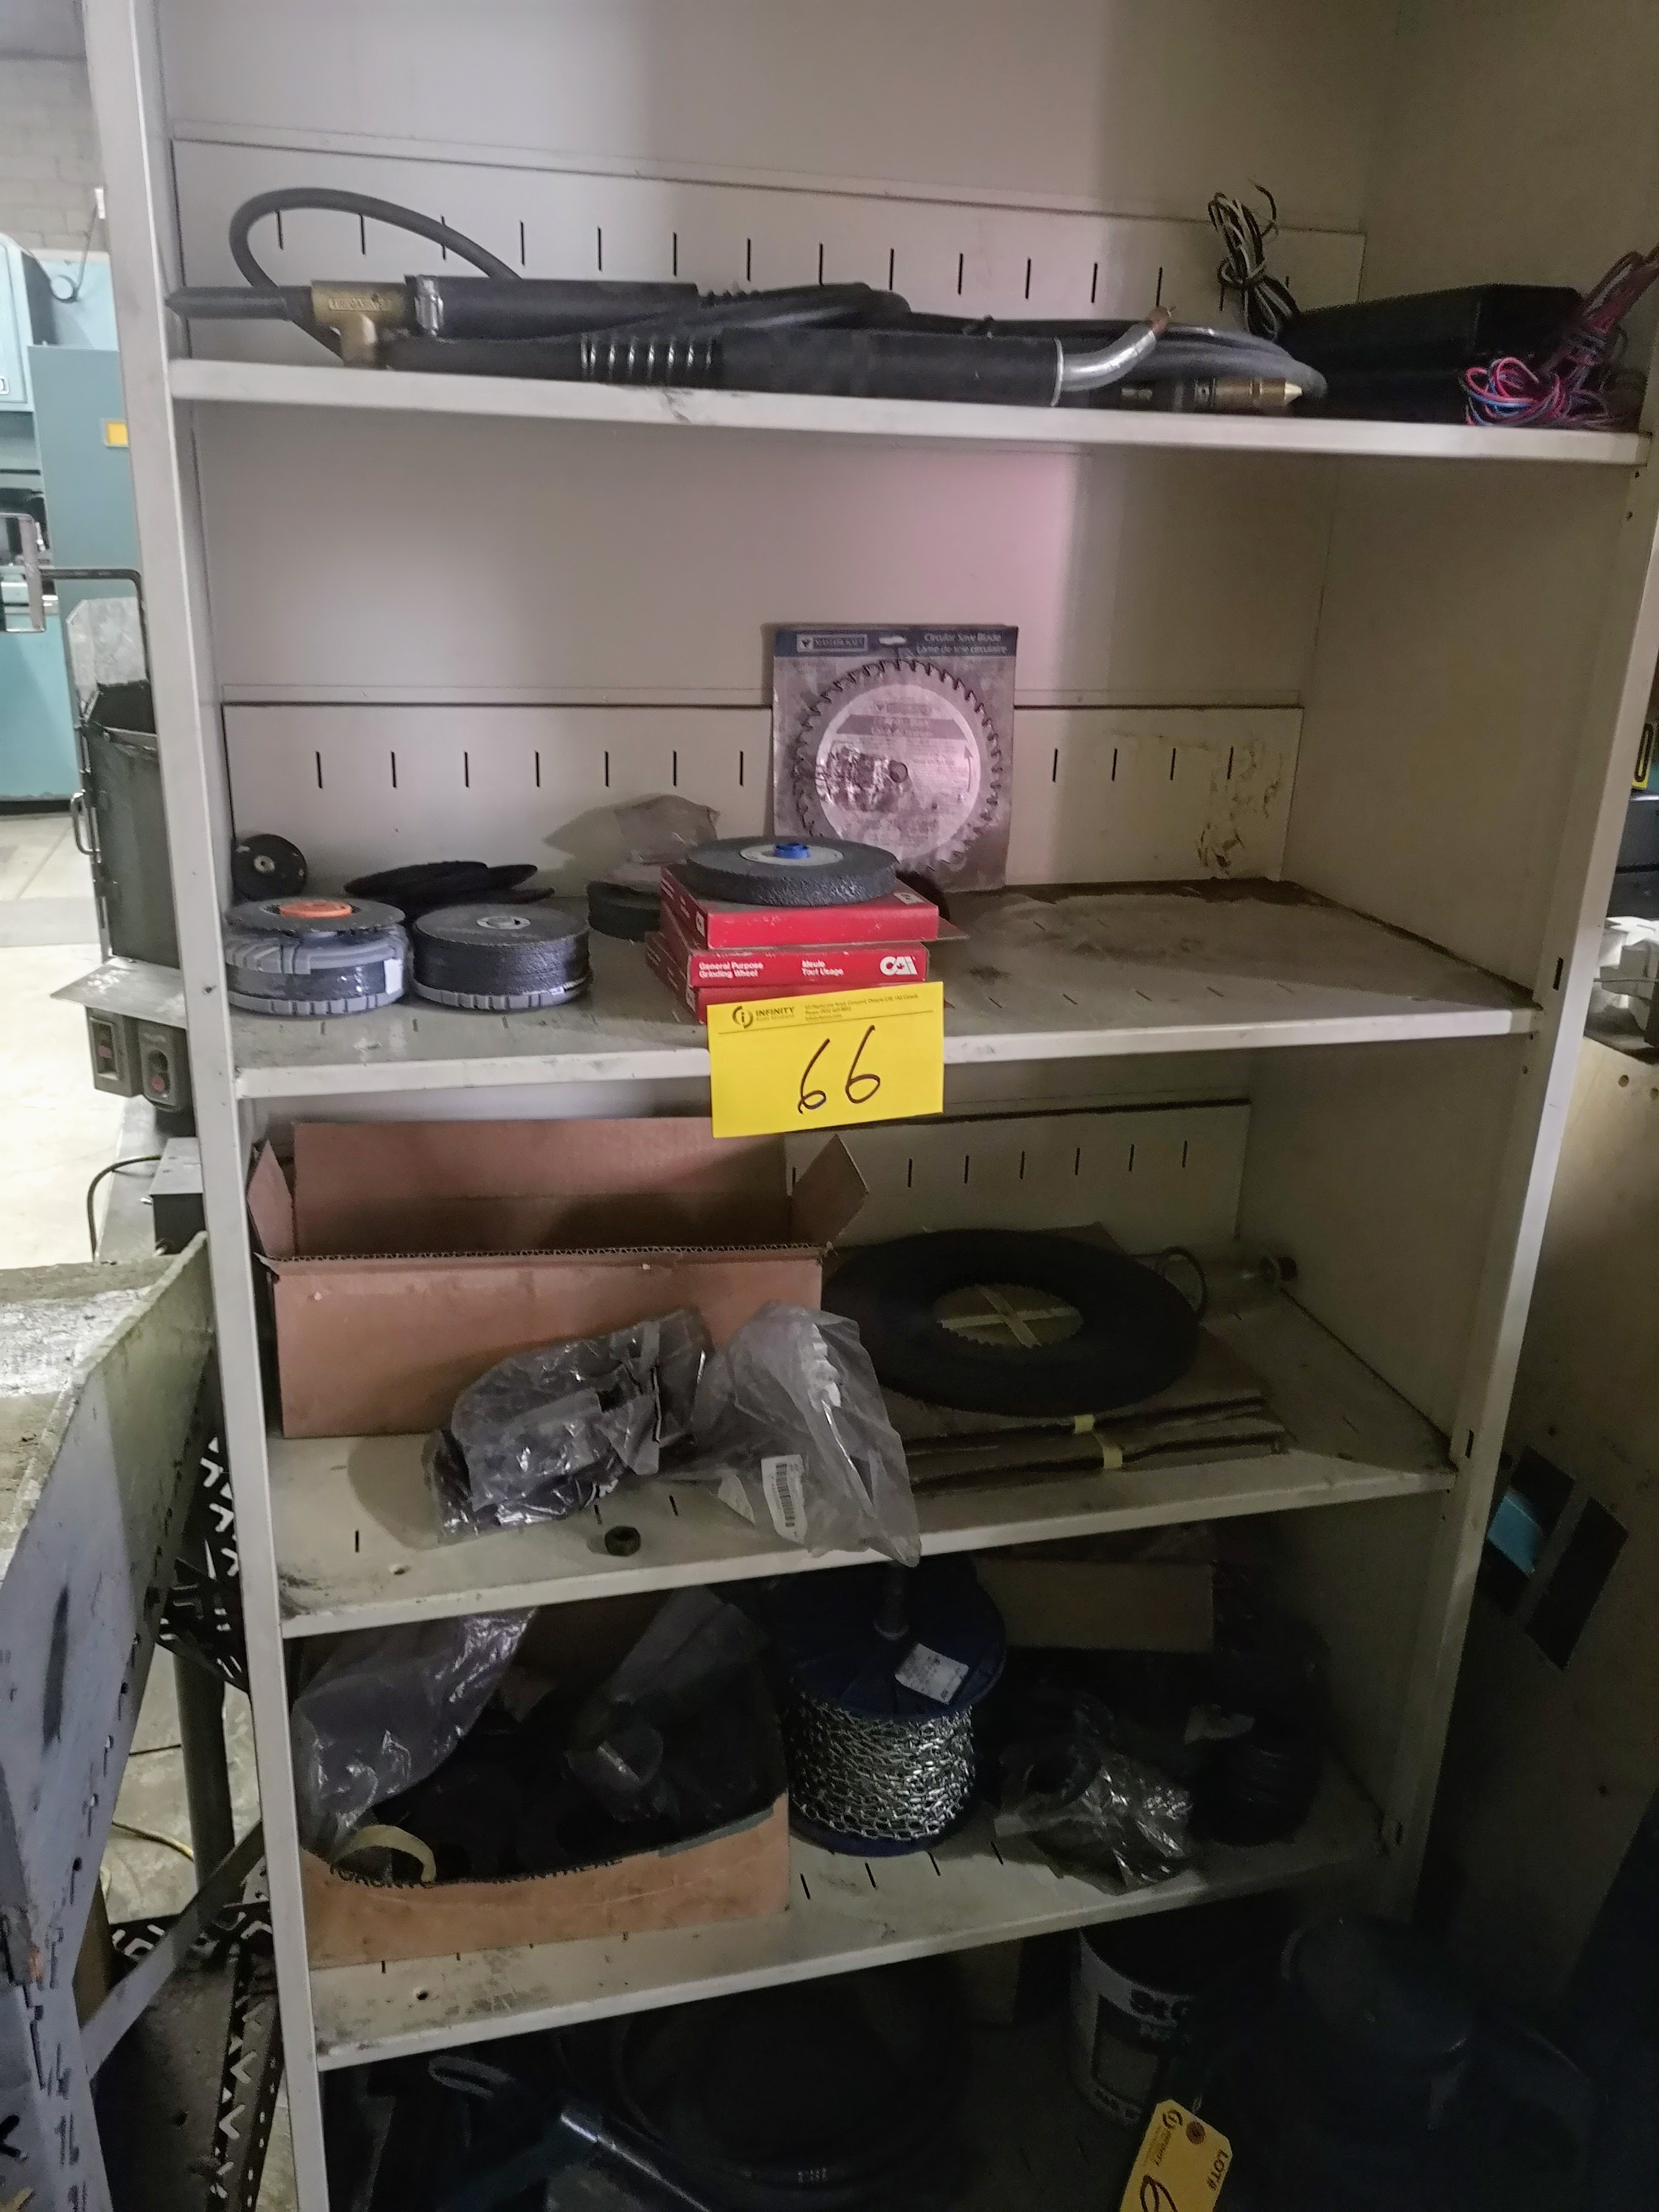 LOT CONTENTS OF (2) CABINETS, GRINDING/CUTTING DISCS, NUTS, BOLTS, ETC.